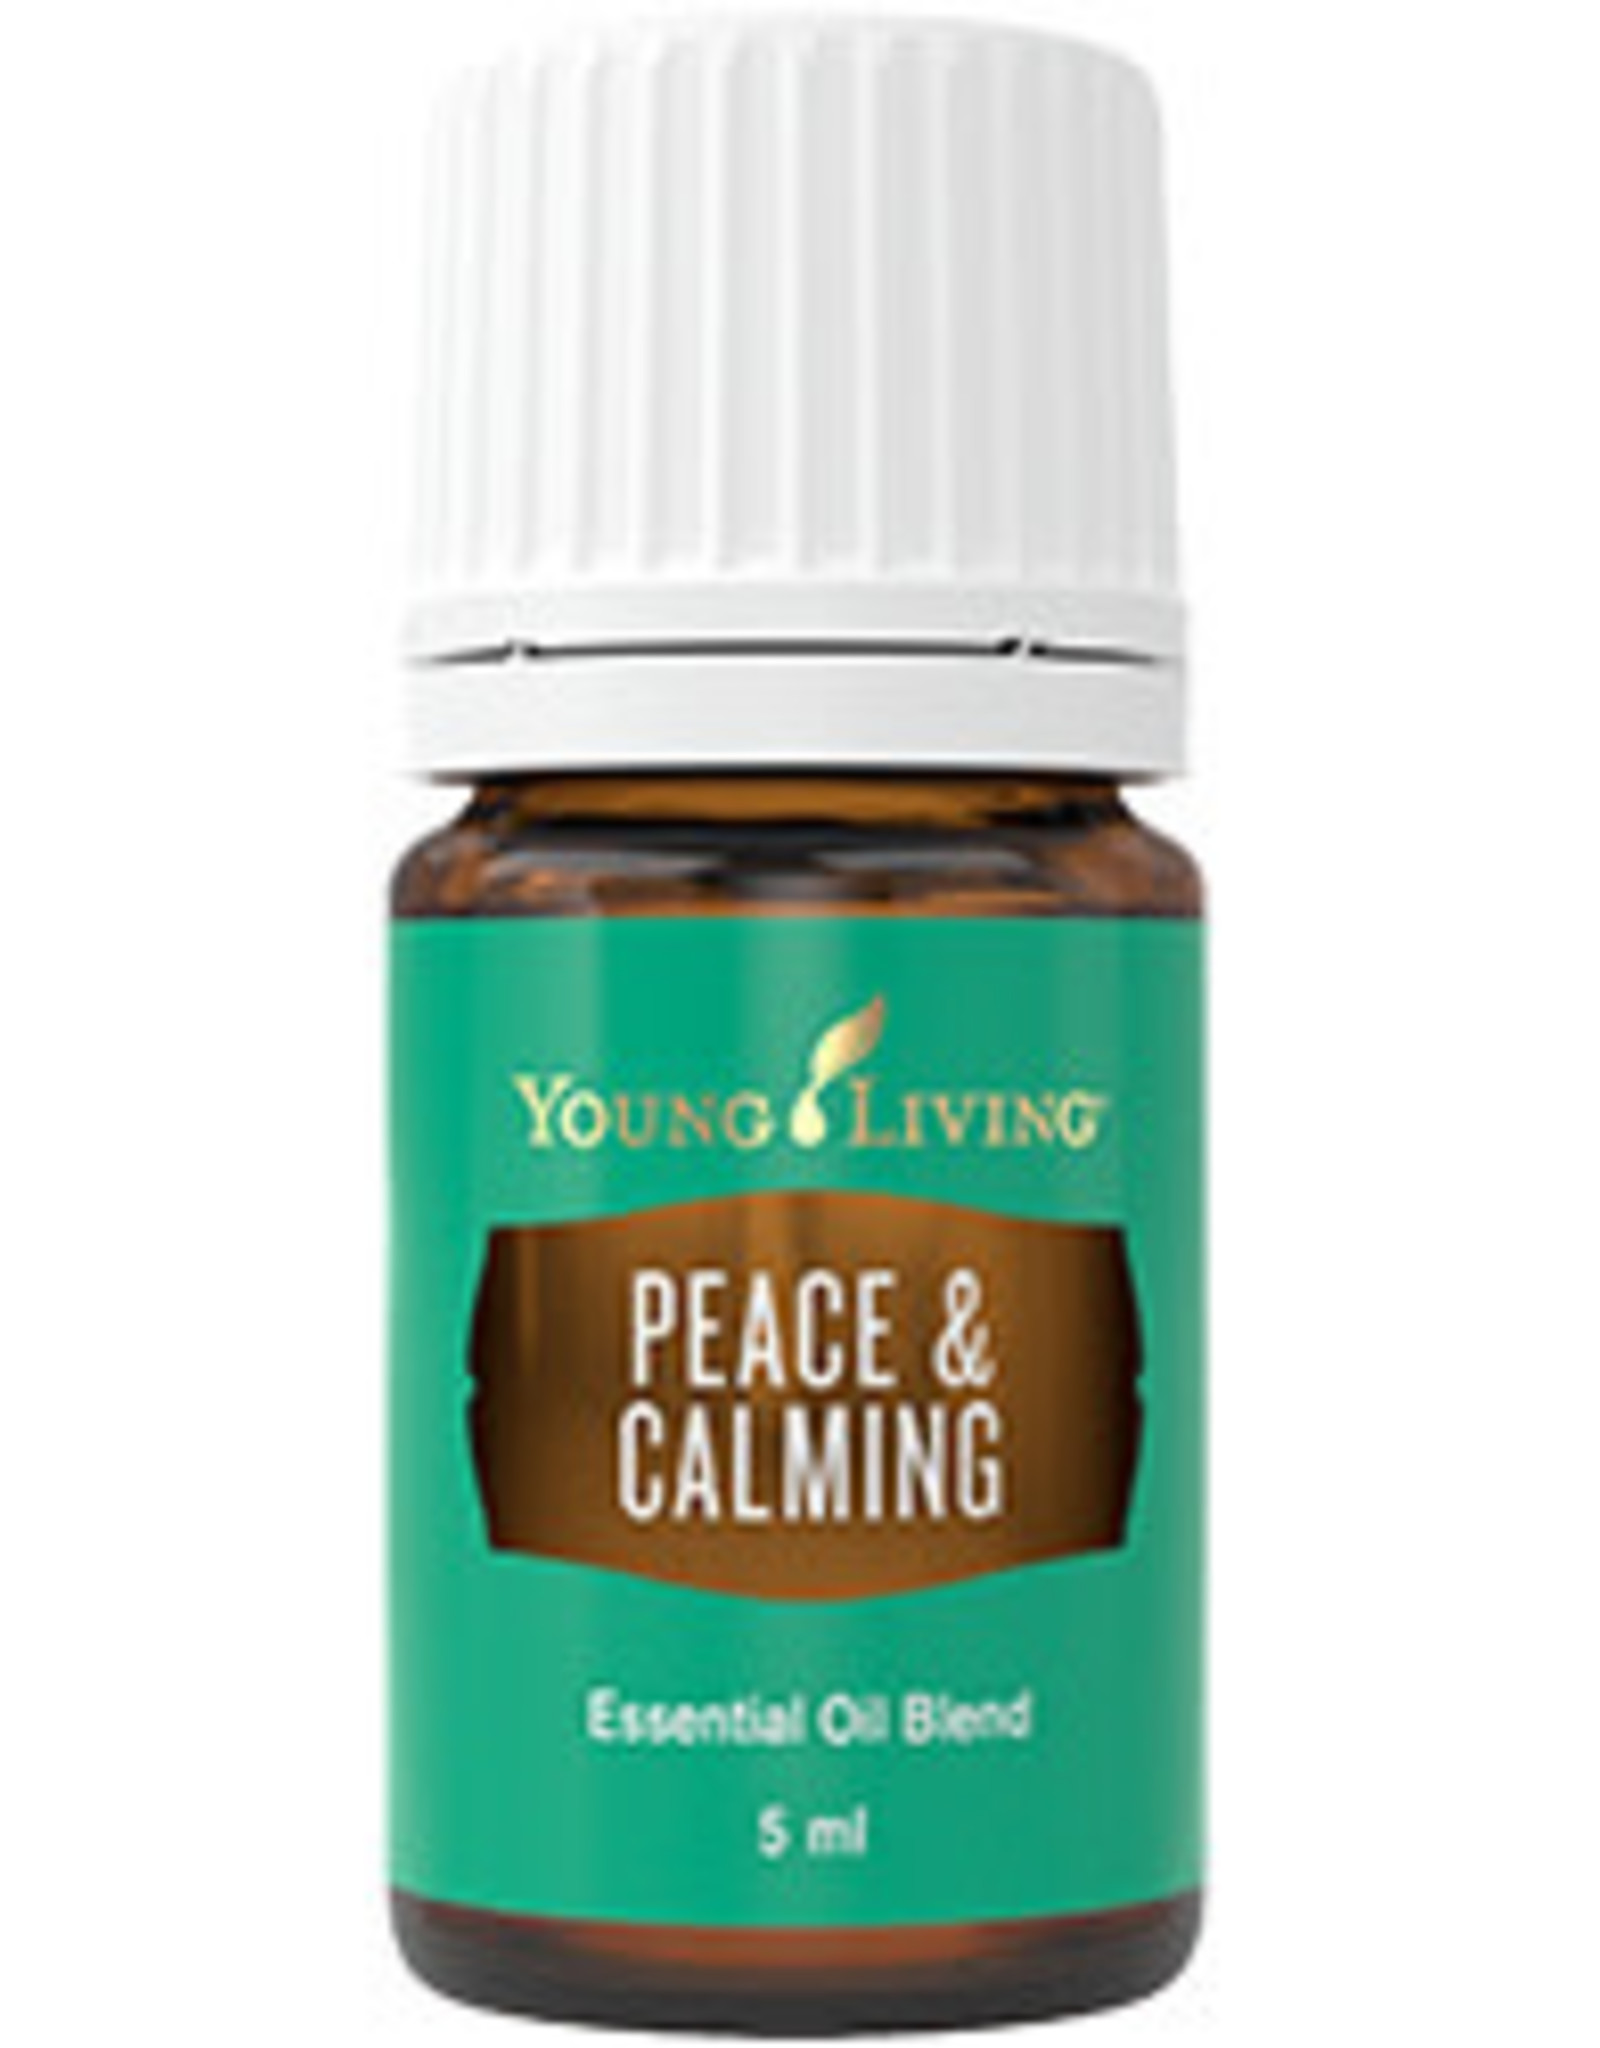 Young Living Peace & Calming Oil Blend